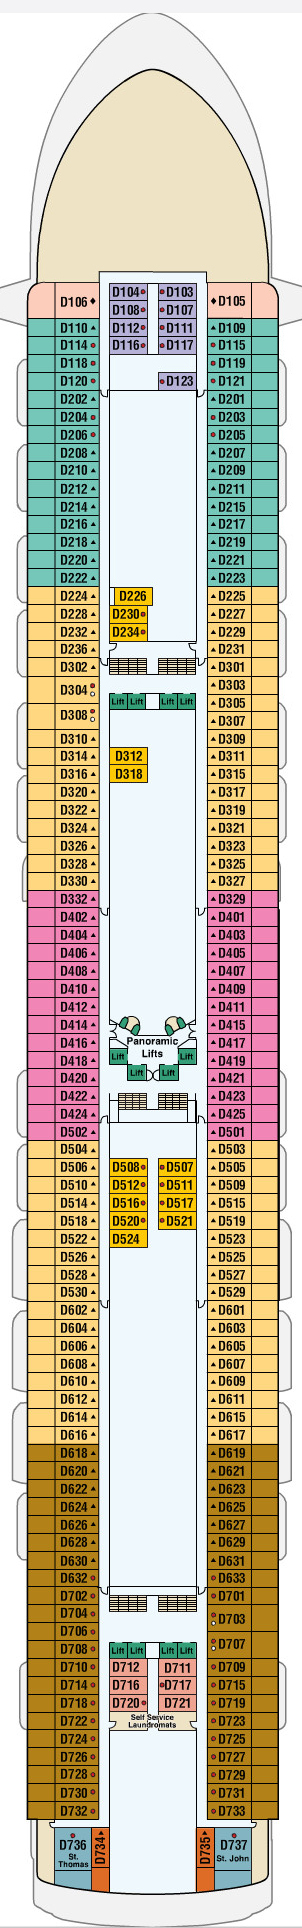 Emerald Princess Dolphin Deck 9 layout